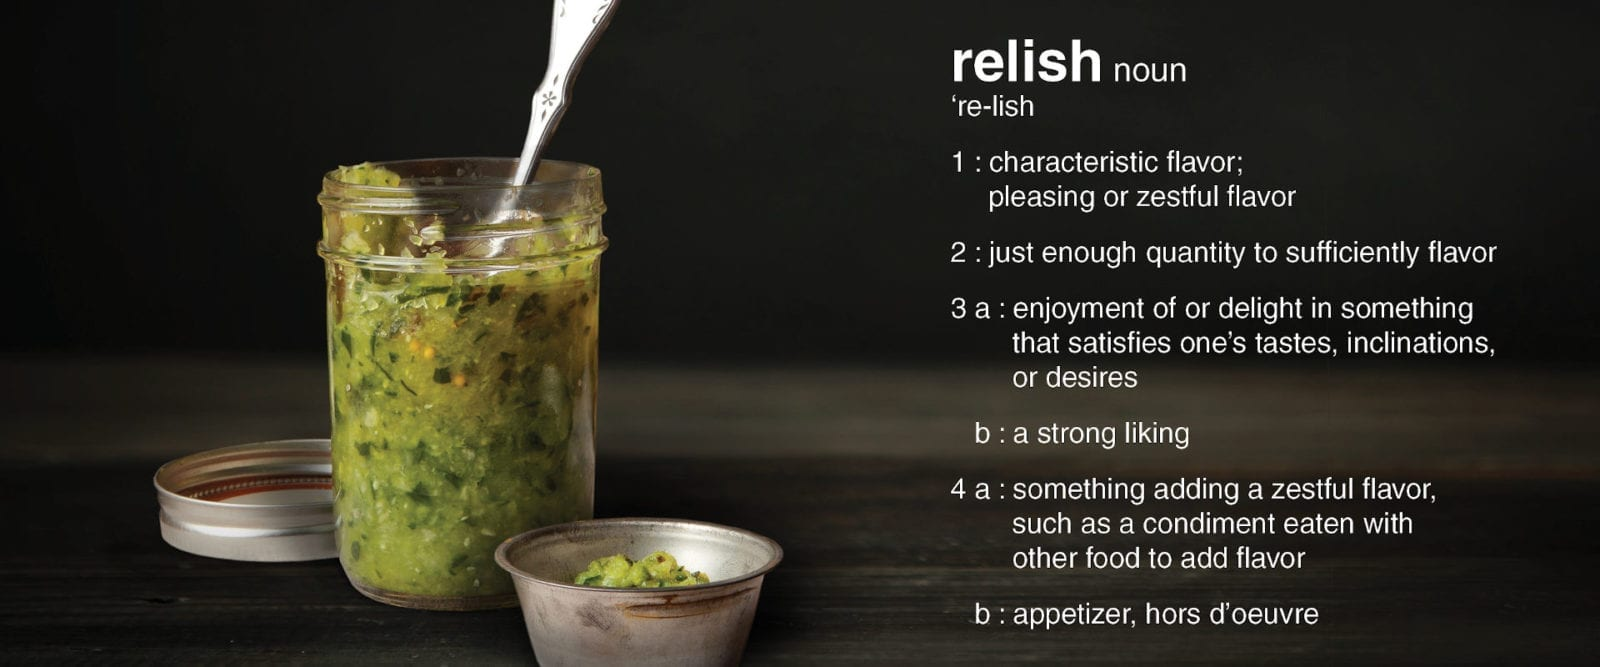 Organic homemade pickle relish with definition